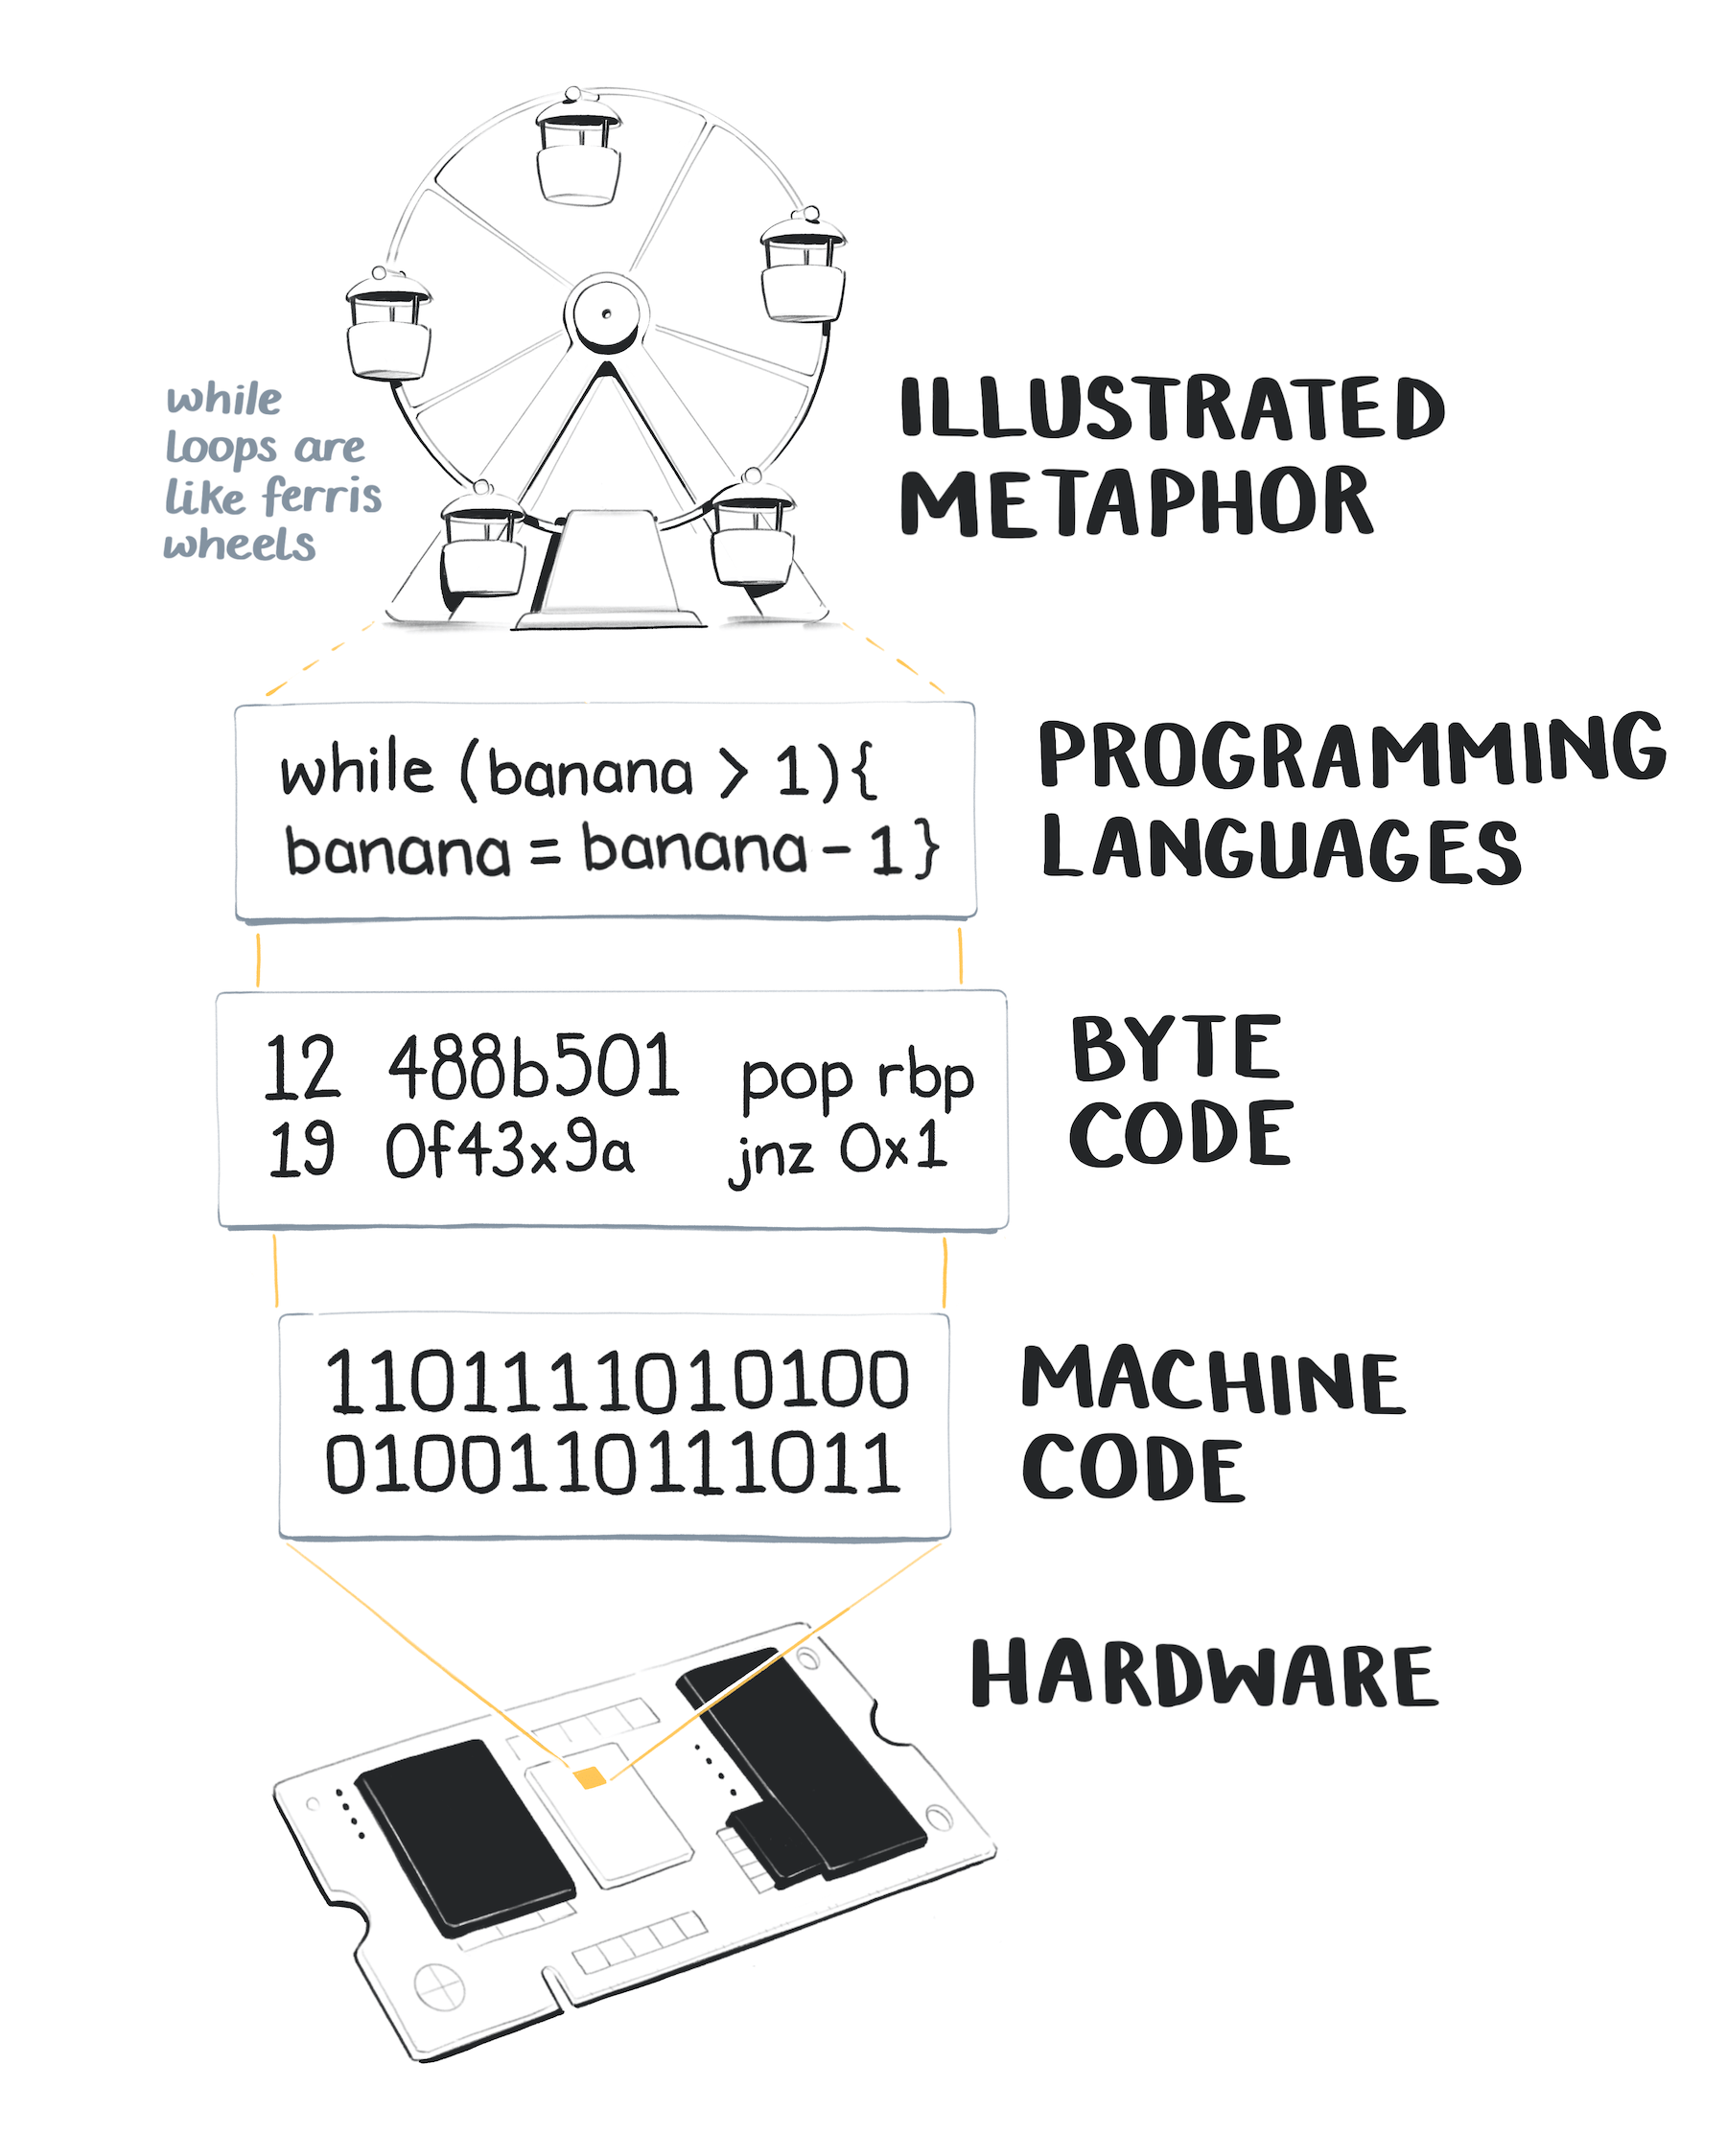 Illustration of a stack that starts with a motherboard chip, then shows machine binary code, then bytecode, then a javascript snippet of a while loop, and at the top an illustration of a ferris wheel